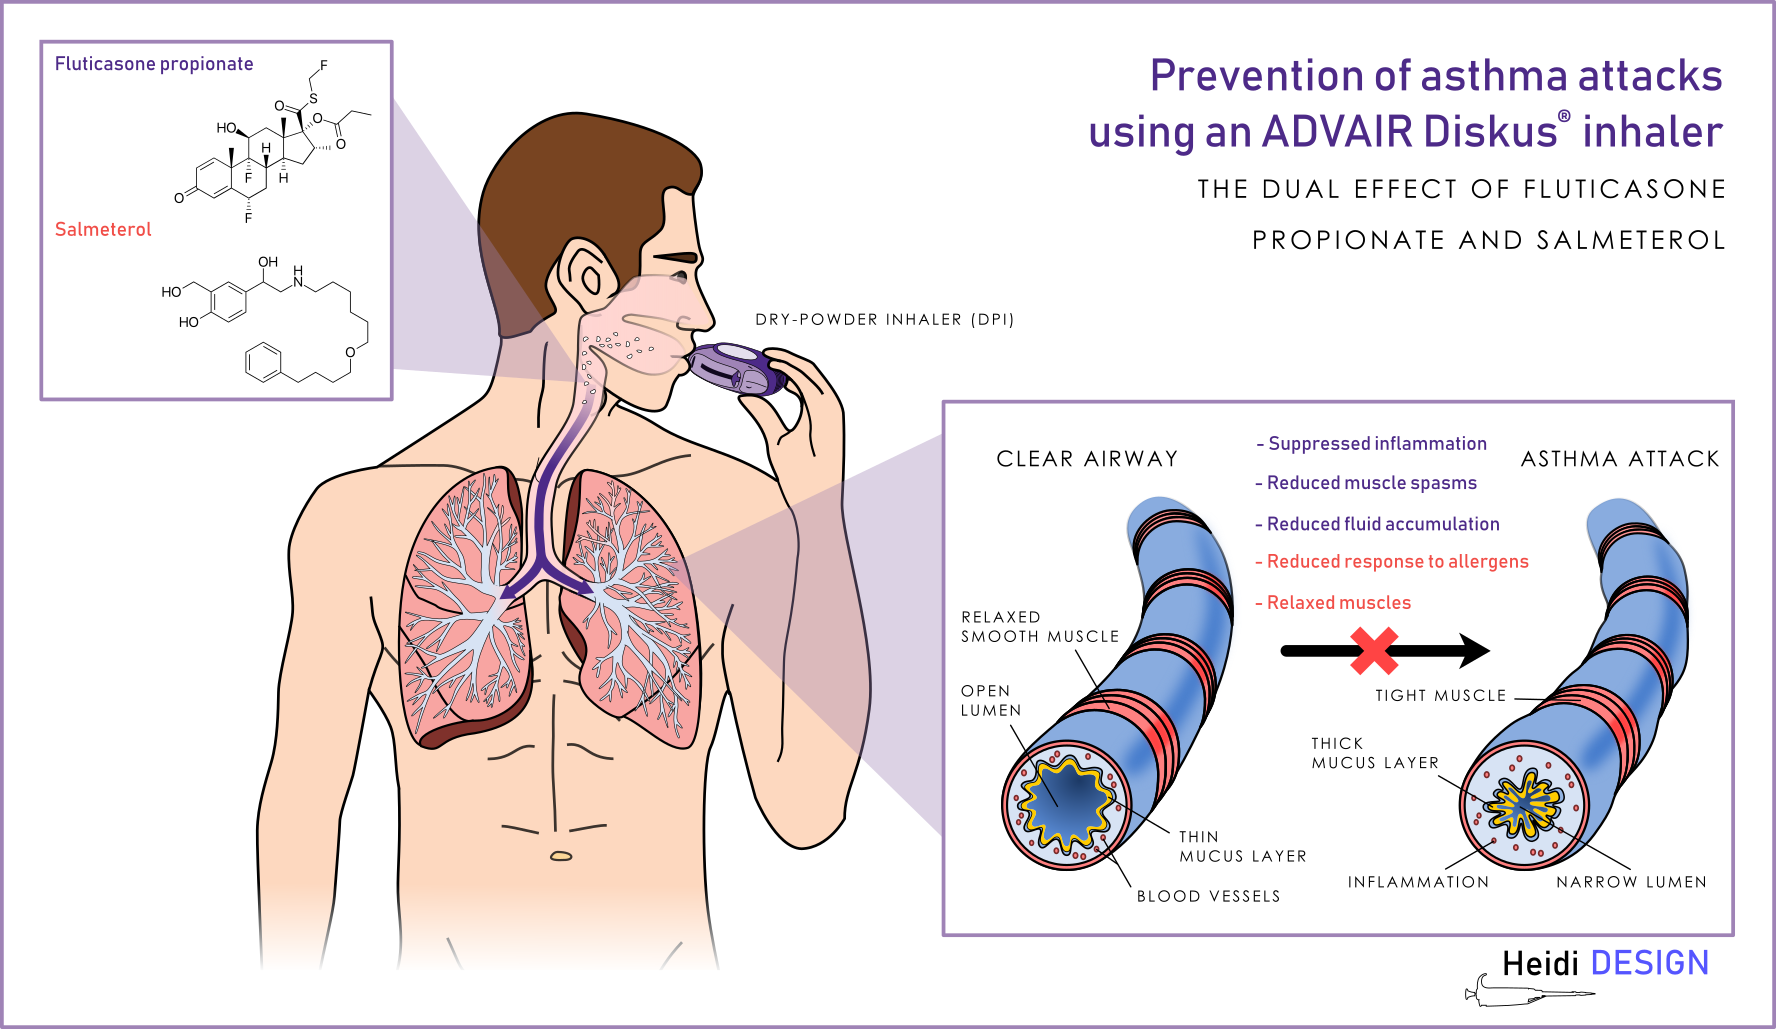 Scientific Design Prevention Of Asthma Attack Using An Advair Diskus Inhaler By Heidi Design Bronchitisfacts Asthma Attacks Cough Treatment Asthma